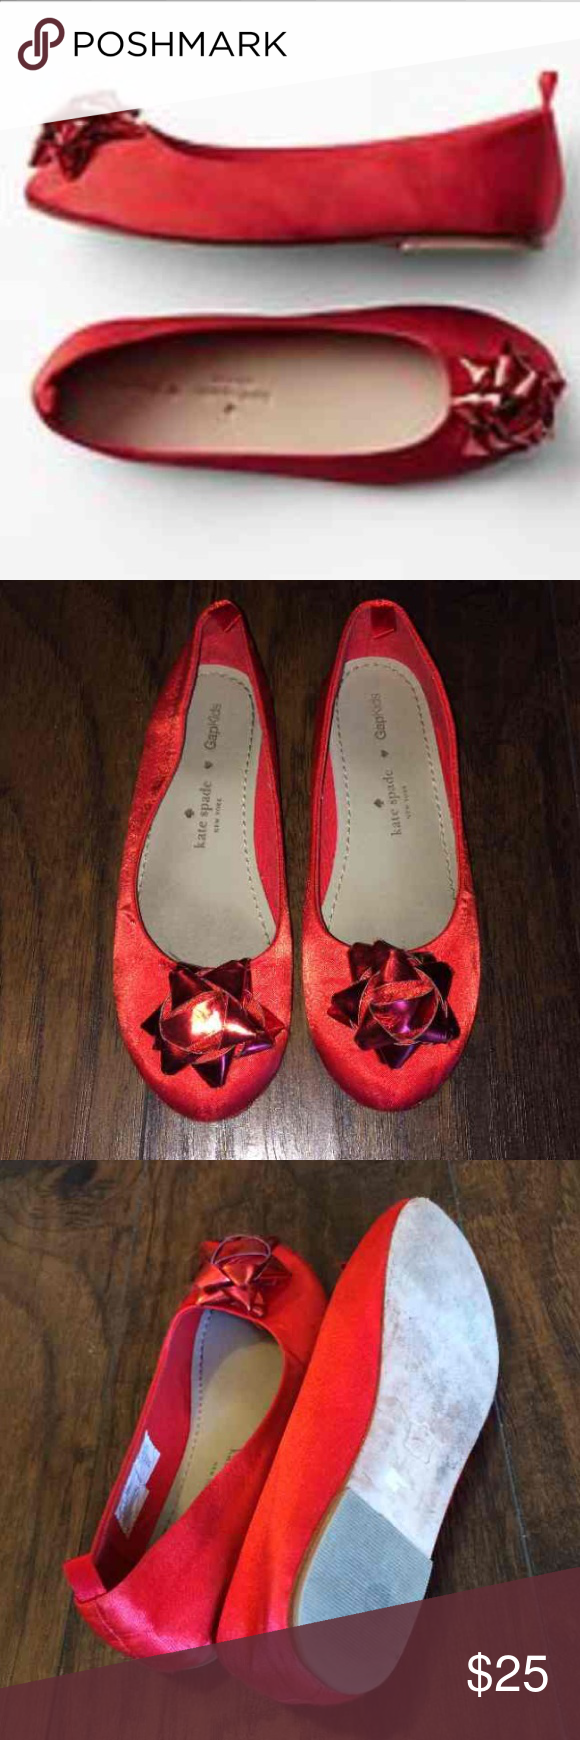 Kate Spade red bow flats by Gap Kids These are an adorable pair of kids flats from KS. Have been worn but lots of life left in them! kate spade Accessories